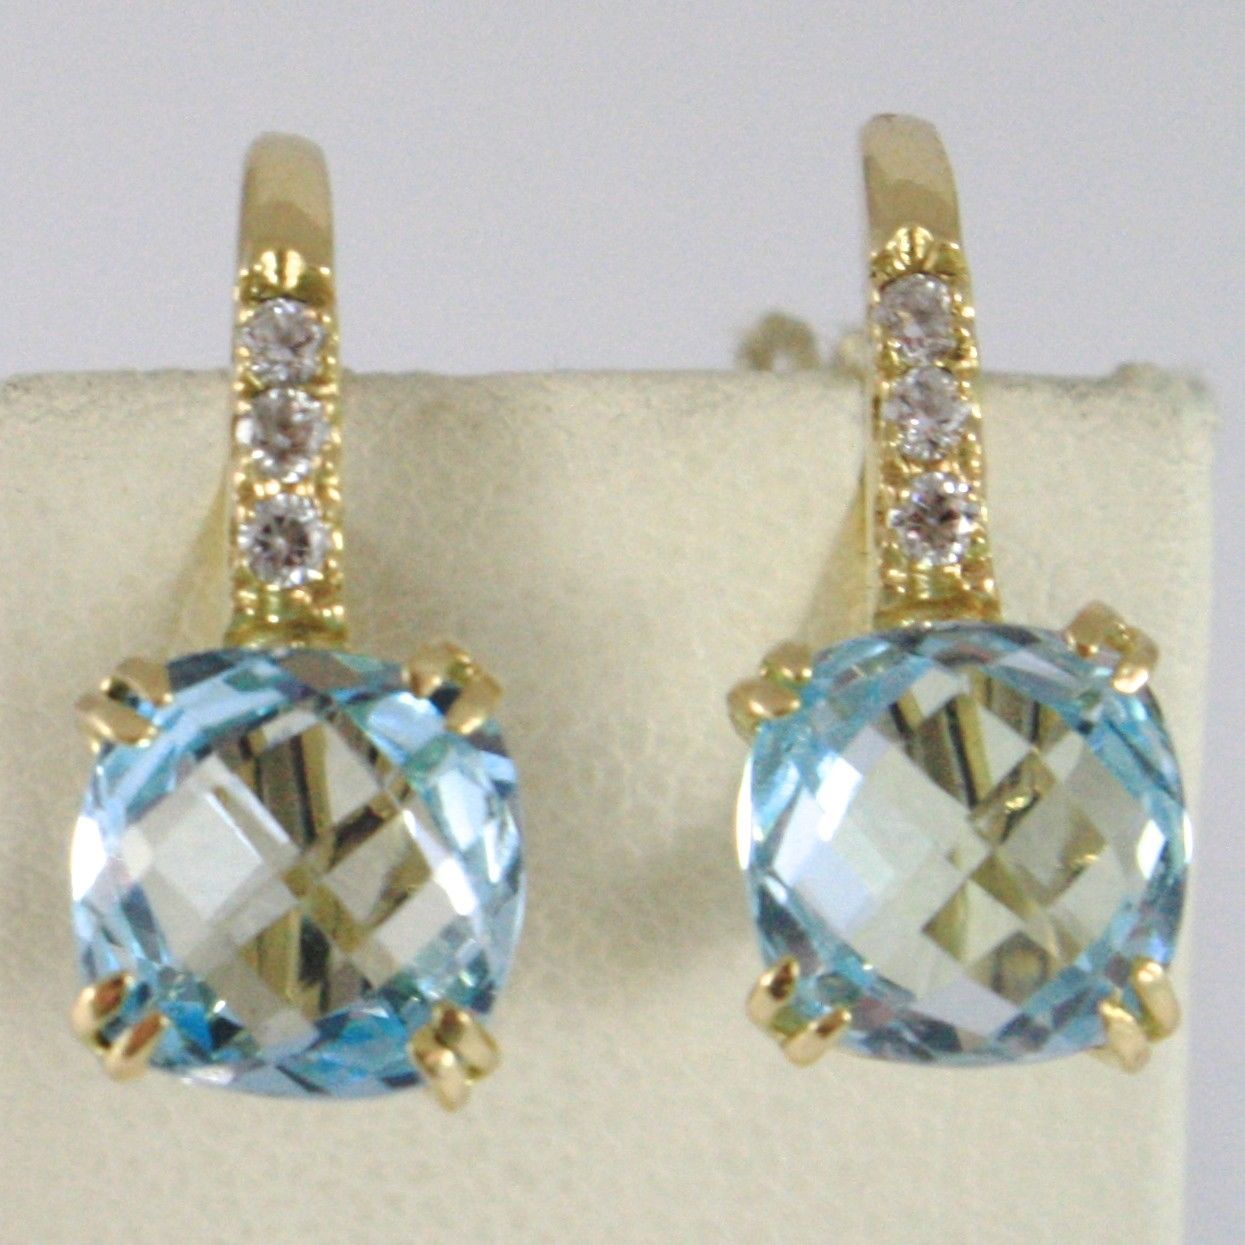 SOLID 18K YELLOW GOLD PENDANT LEVERBACK EARRINGS WITH BLUE TOPAZ AND ZIRCONIA